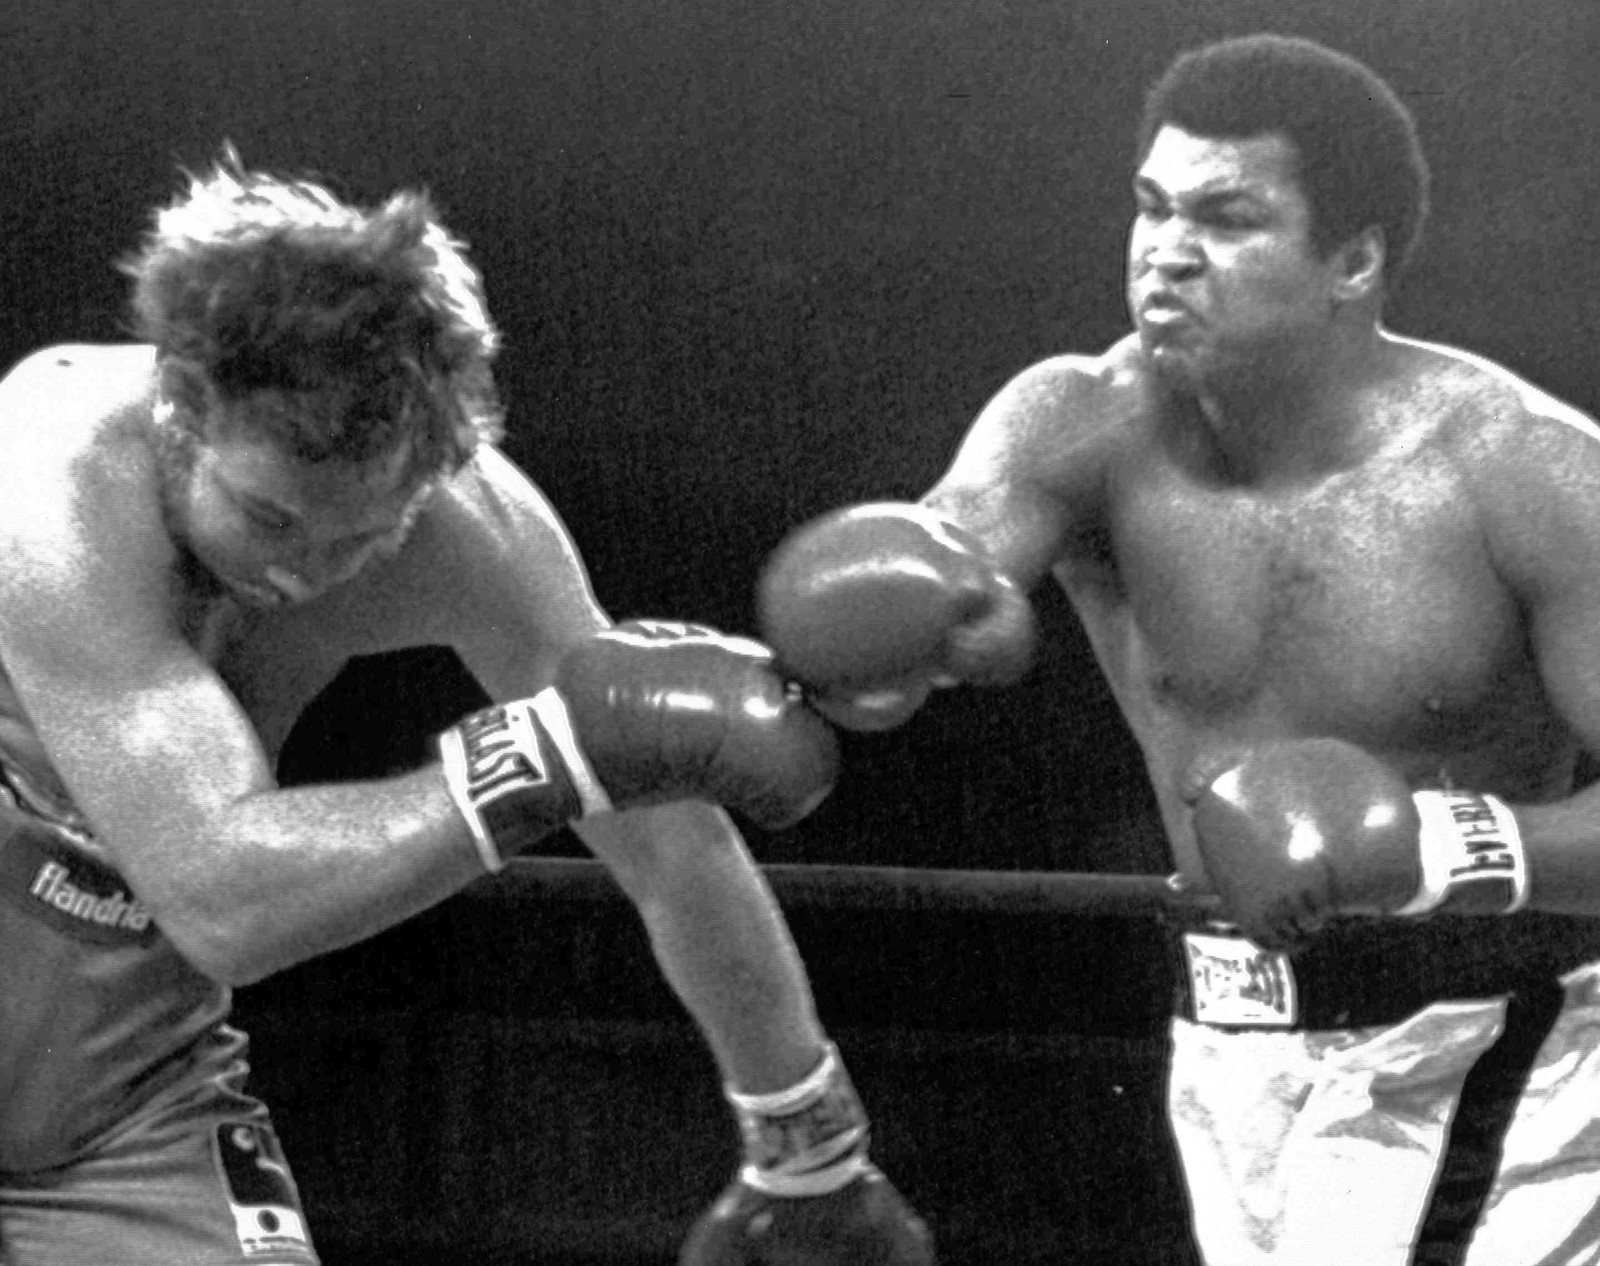 Puerto Rico Ali Coopman American heavyweight boxer Muhammad Ali, right, lands a blow to the jaw of Belgian boxer Jean-Pierre Coopman during their championship fight in San Juan, Puerto Rico, Feb. 21, 1976. (AP Photo)